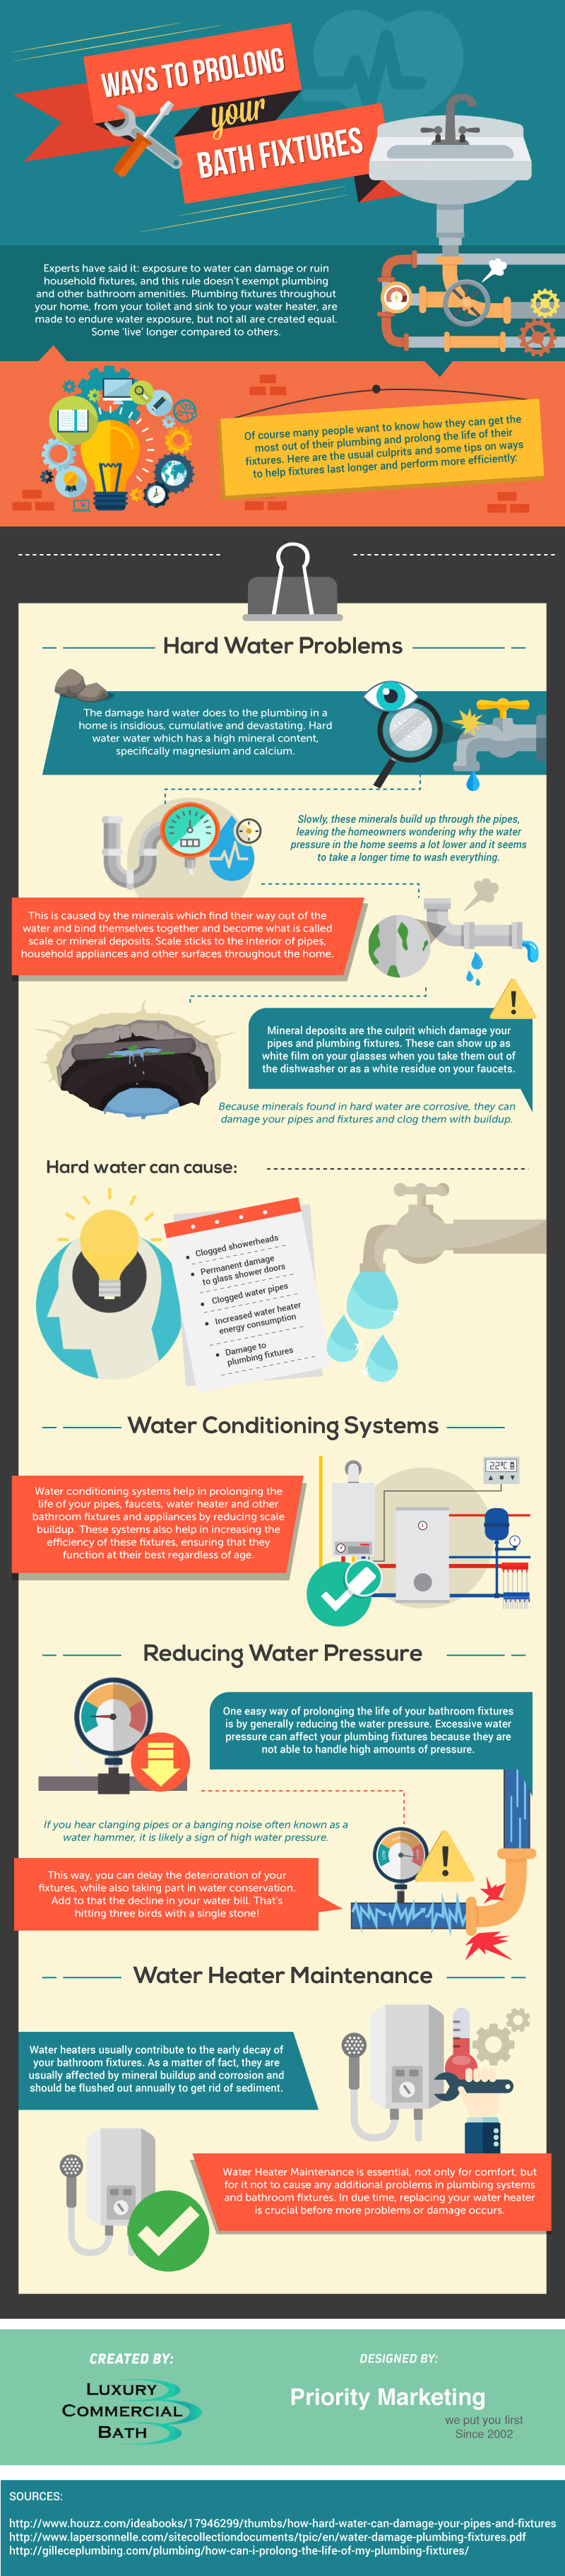 Ways To Prolong Your Bath Fixtures [Infographic]